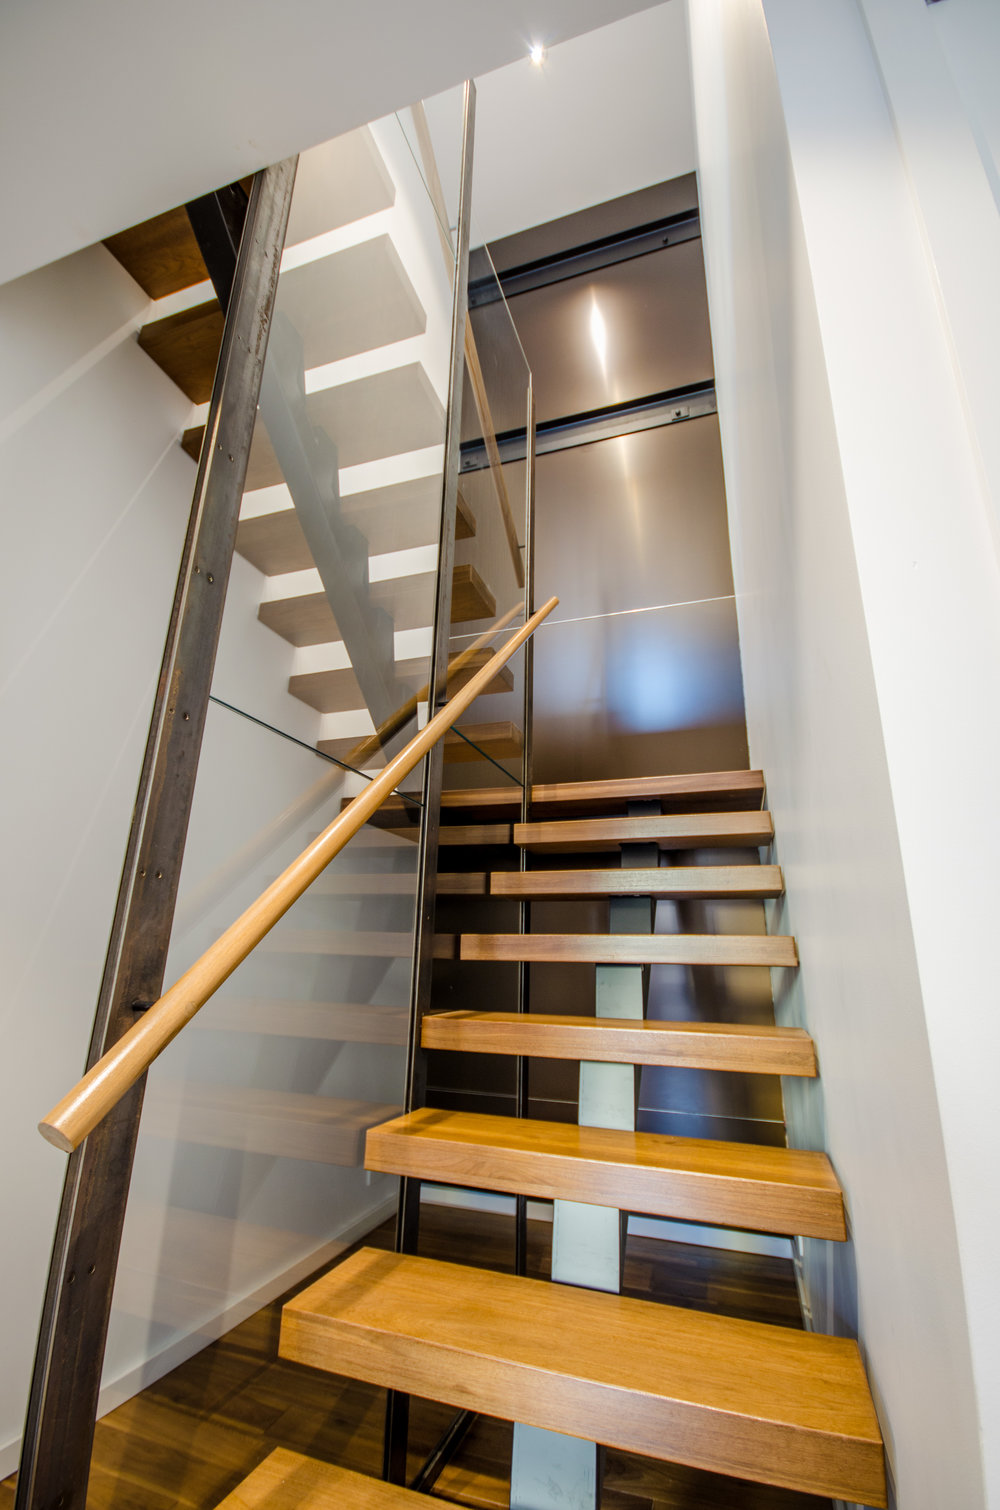 TRAstudio_173WestBroadway_Tribeca_4th Floor Interior_Stair_Glass_Full.jpg